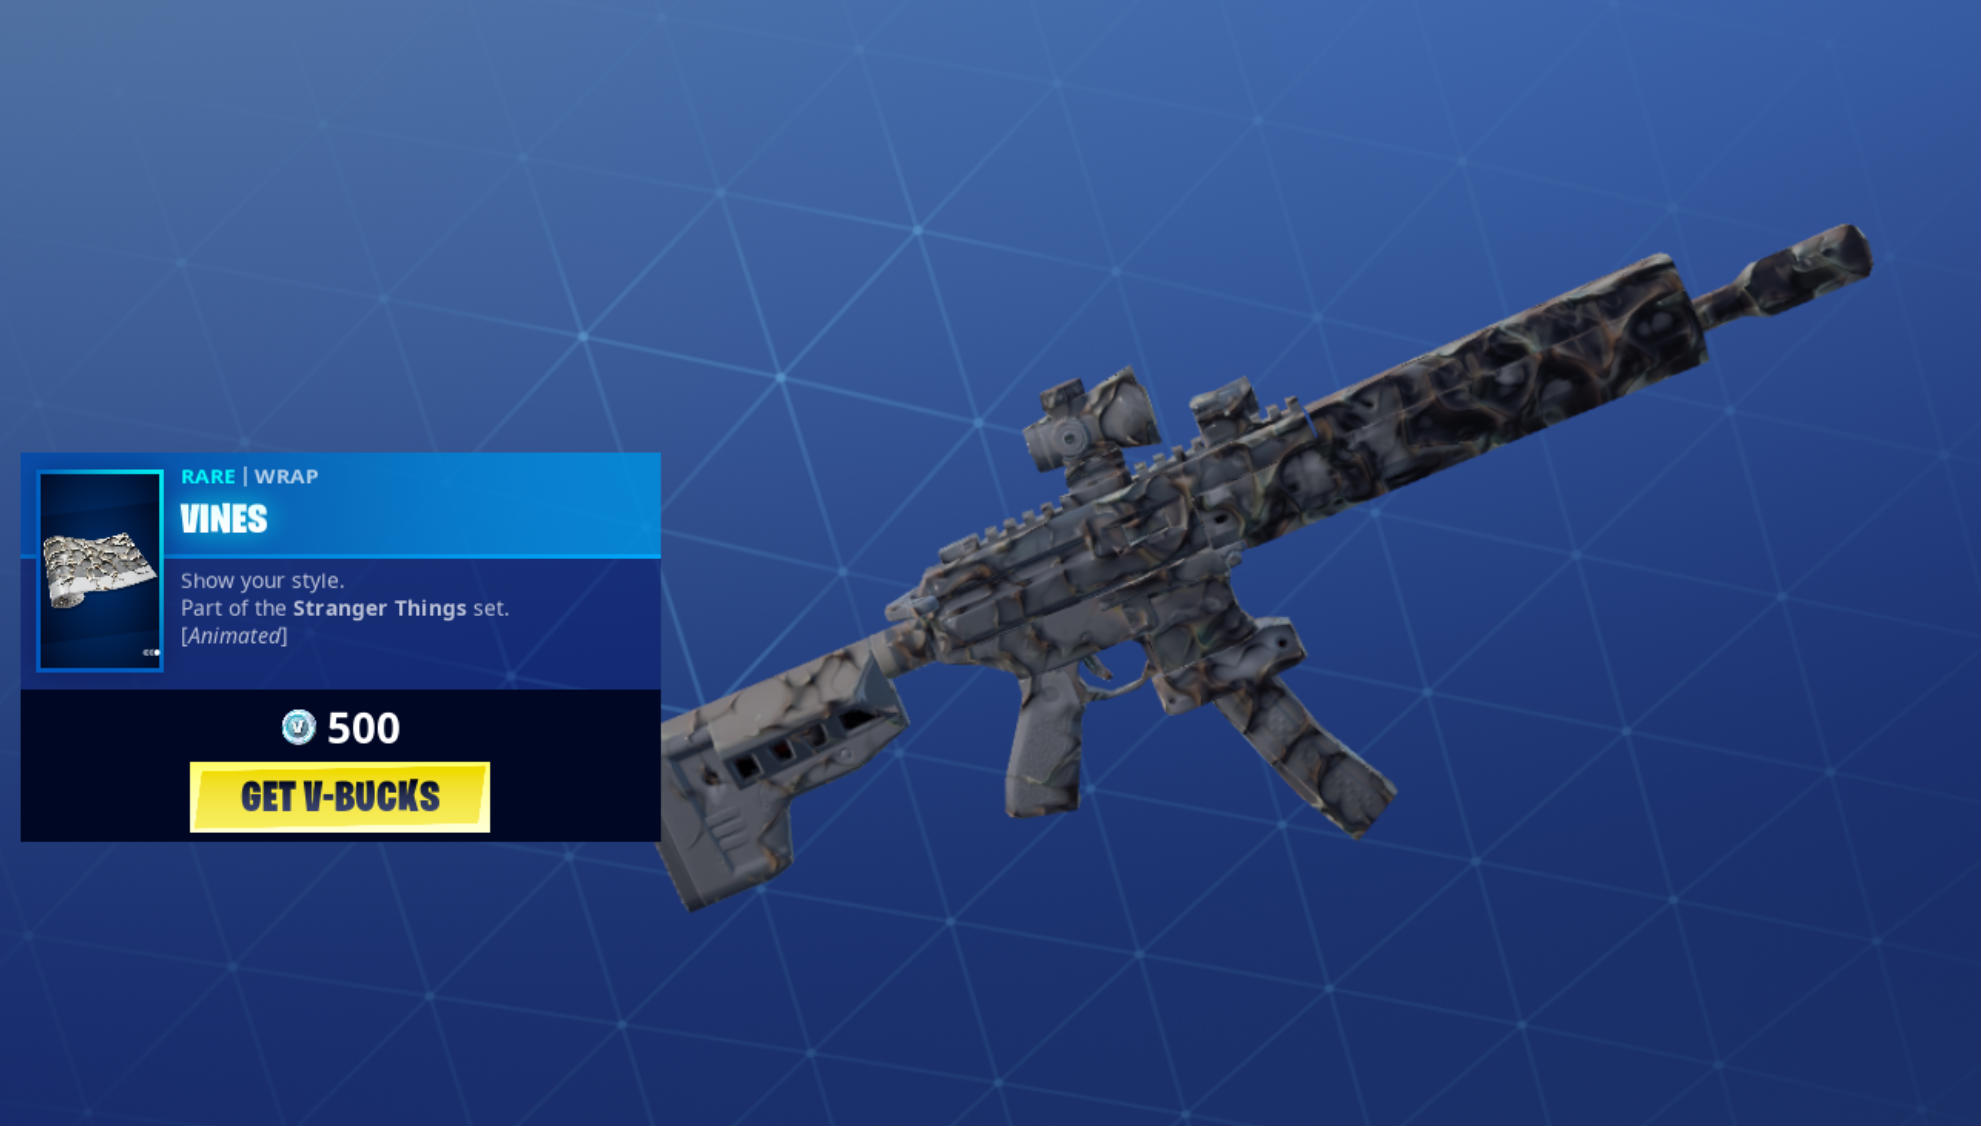 Fortnite expands Stranger Things tie-in with skins and ...